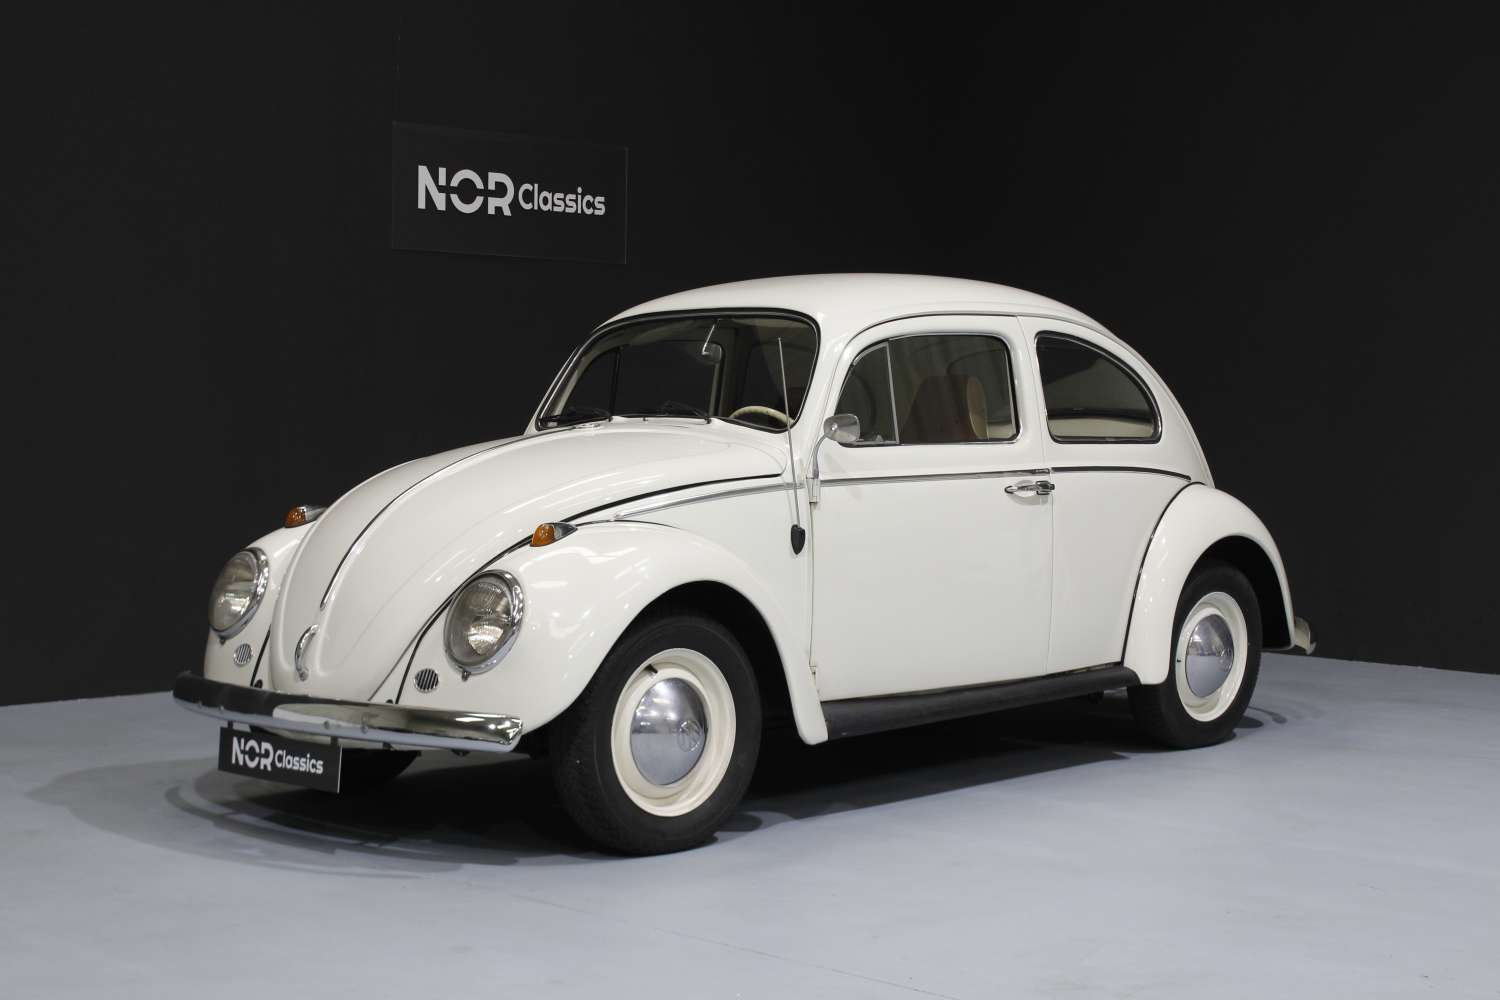 VW Beetle 1200 1963 Reserved